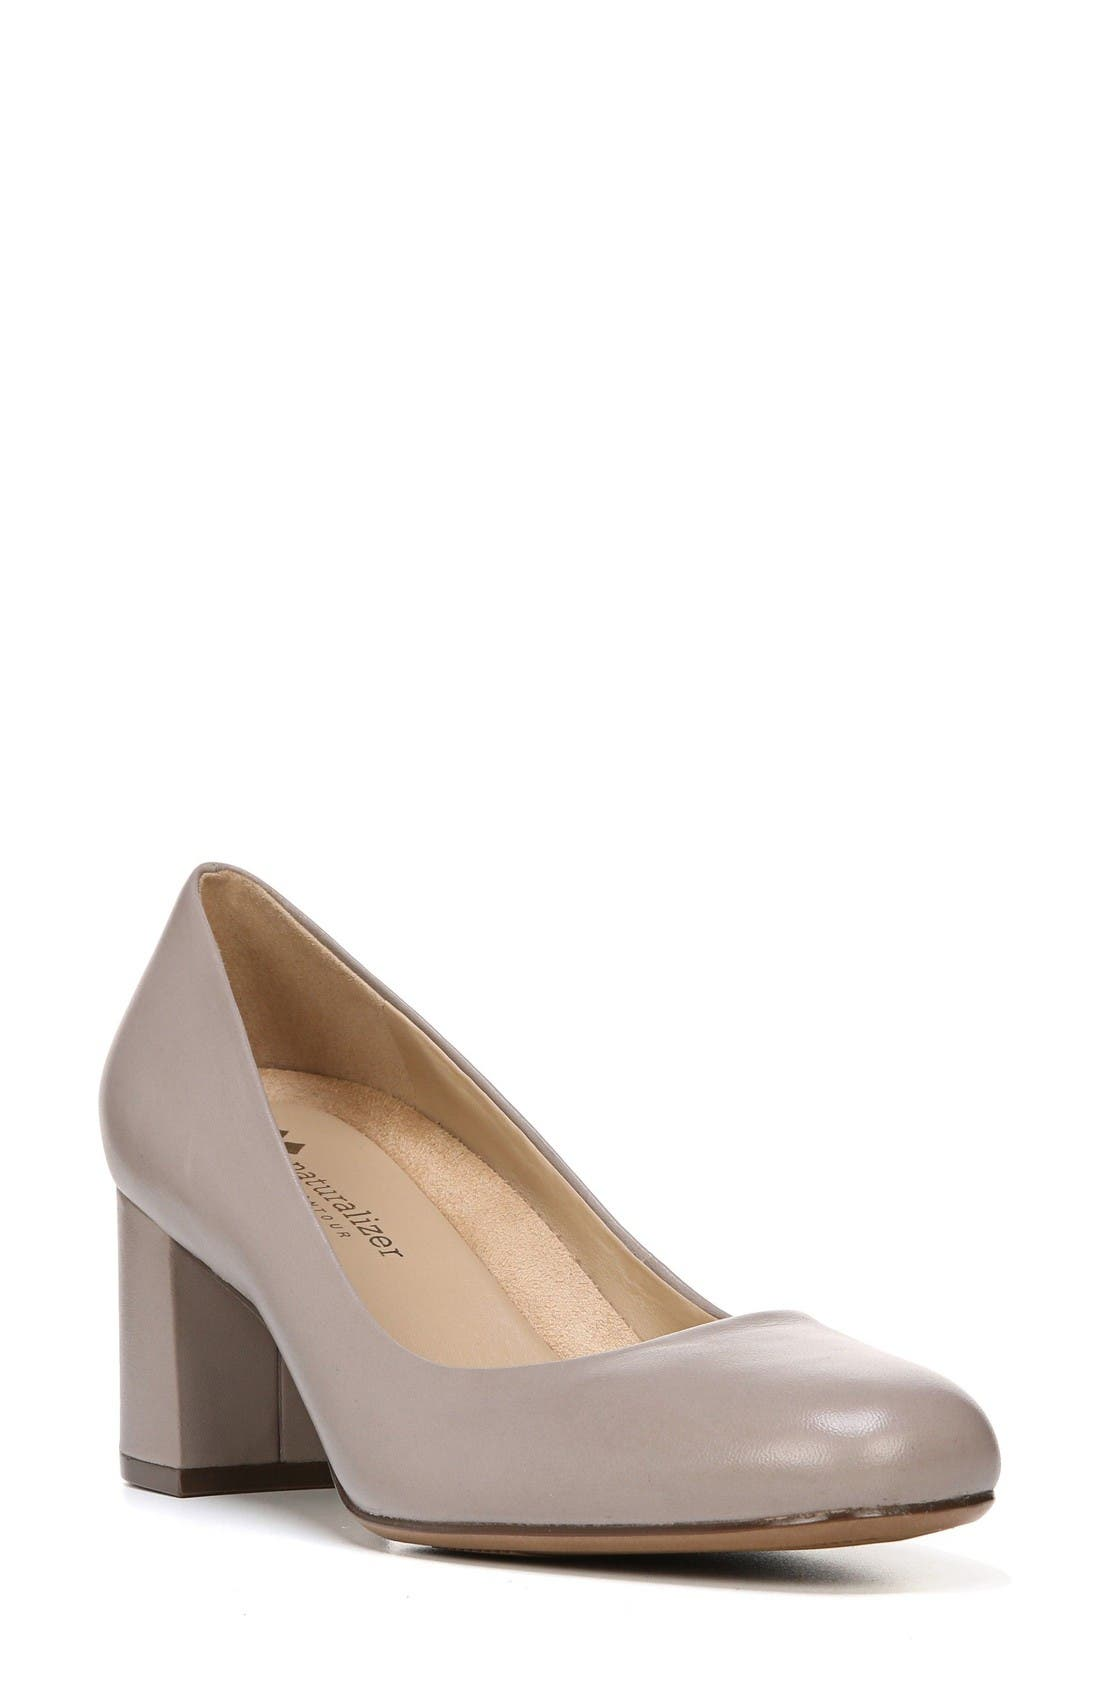 Whitney Pump,                         Main,                         color, Dove Leather